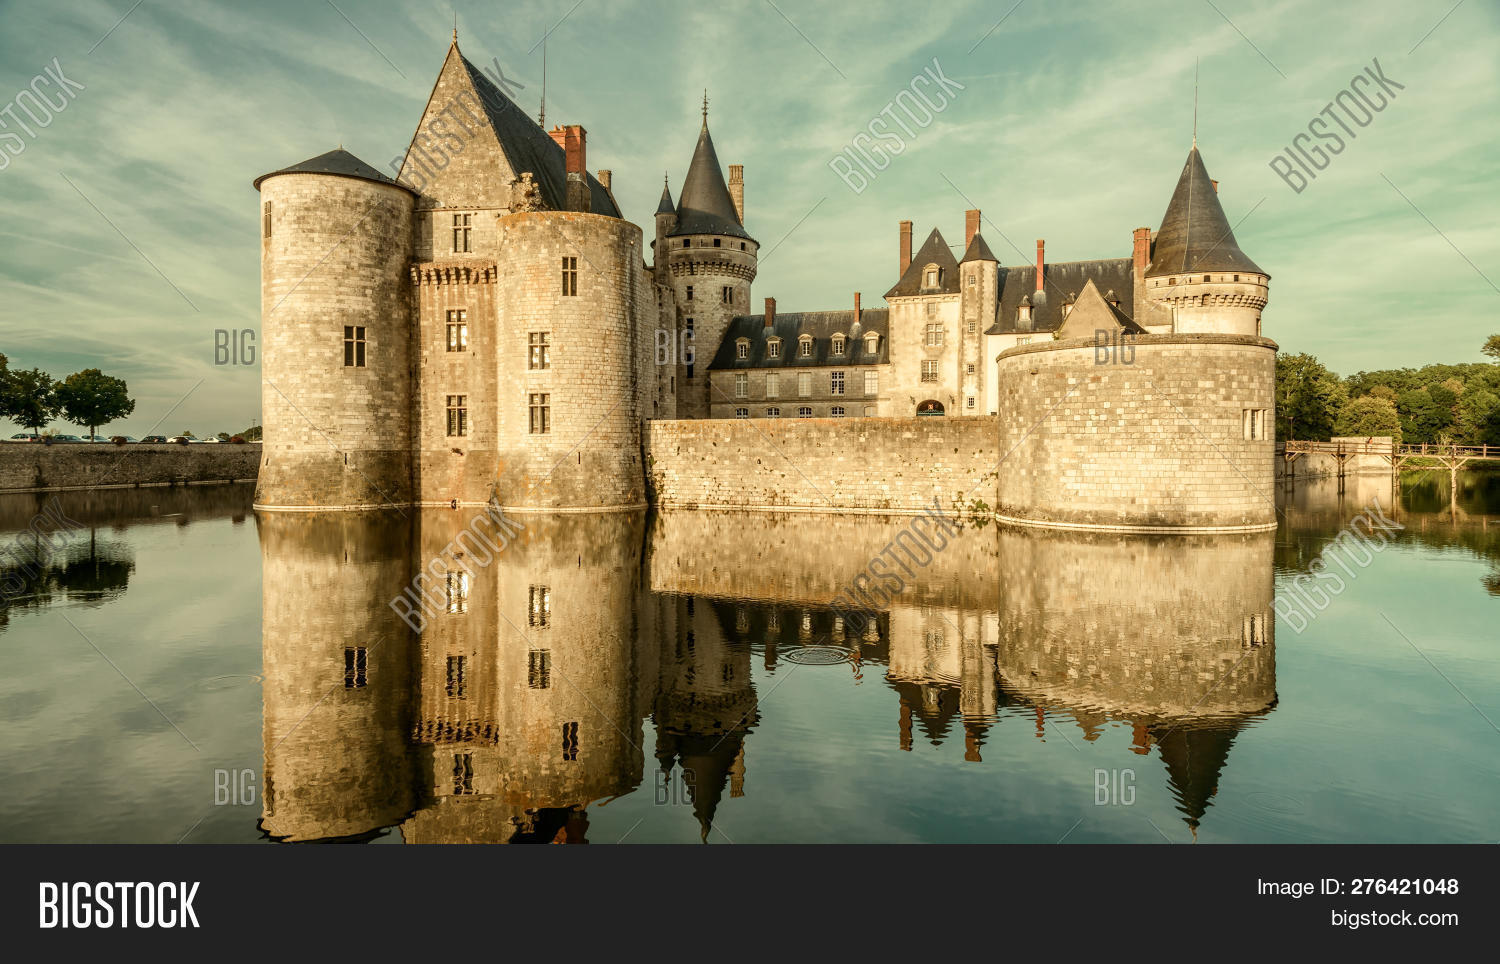 Castle or chateau de Sully-sur-Loire in sunset light, France. This old castle is a famous landmark of Loire Valley. Panorama of the medieval castle on the river. French vintage castle in evening.